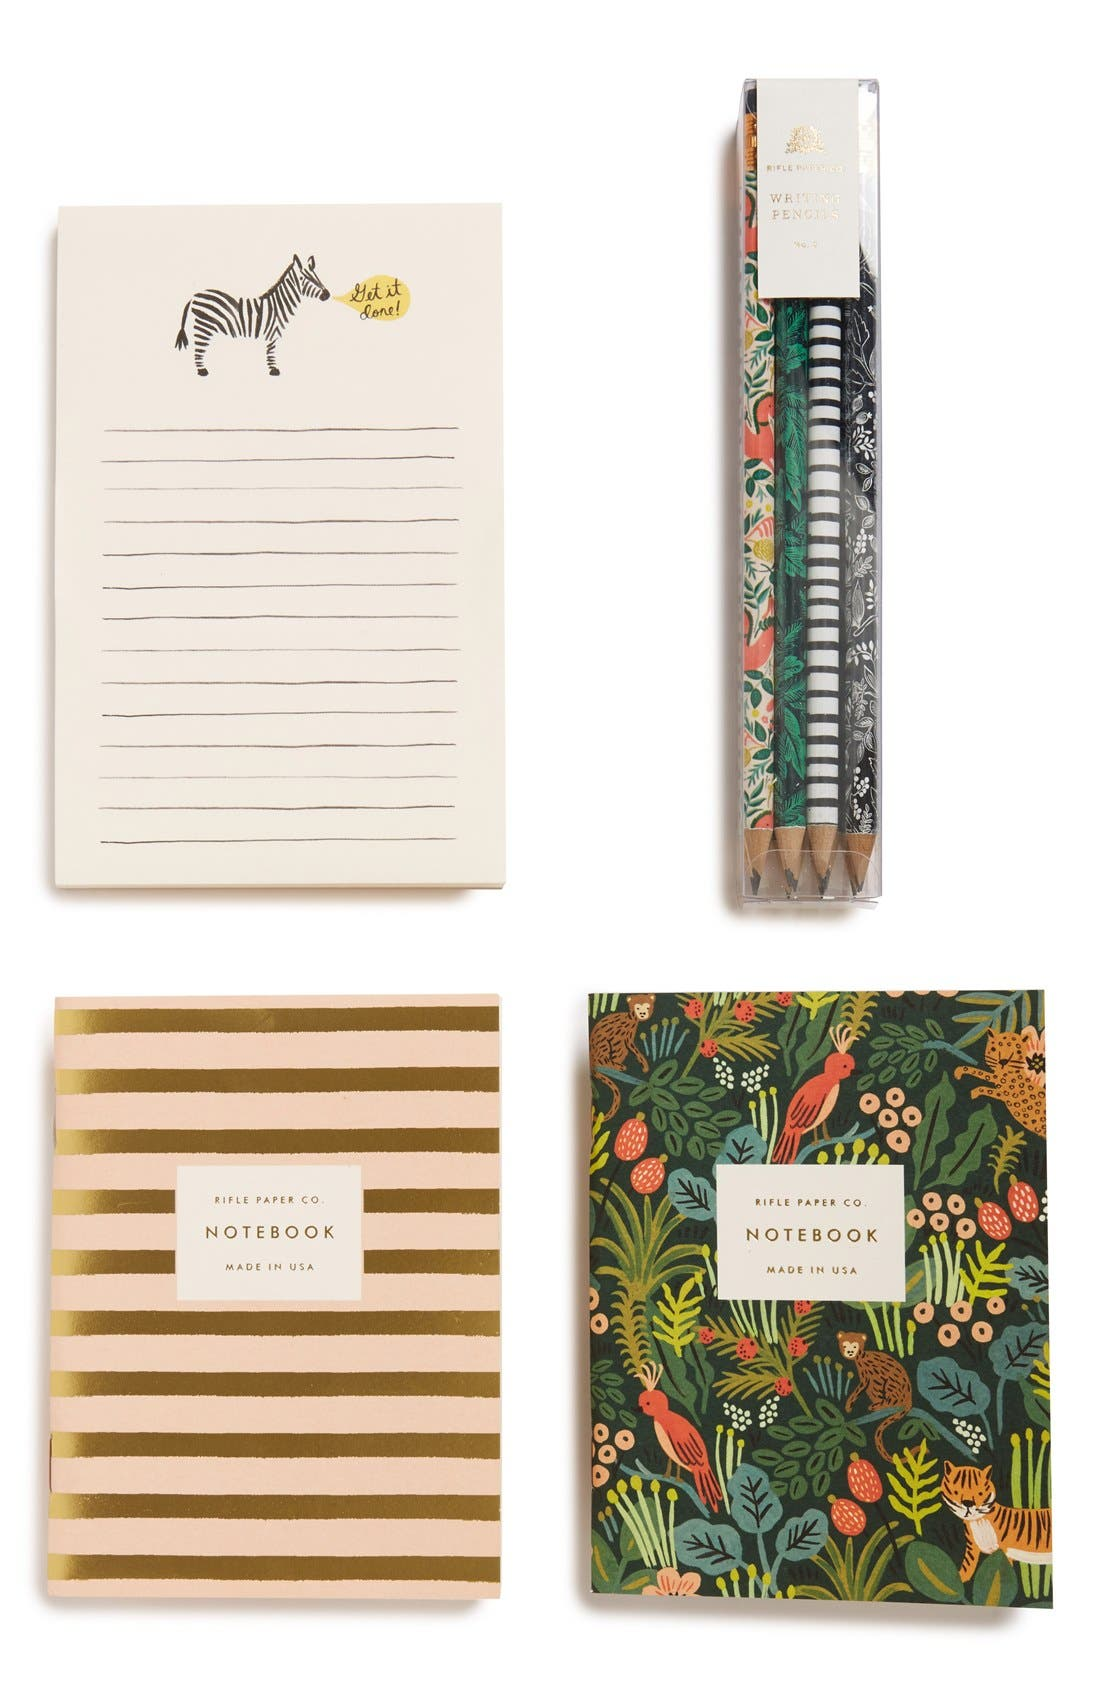 Alternate Image 1 Selected - Rifle Paper Co. Notebooks, Notepad & Pencil Set